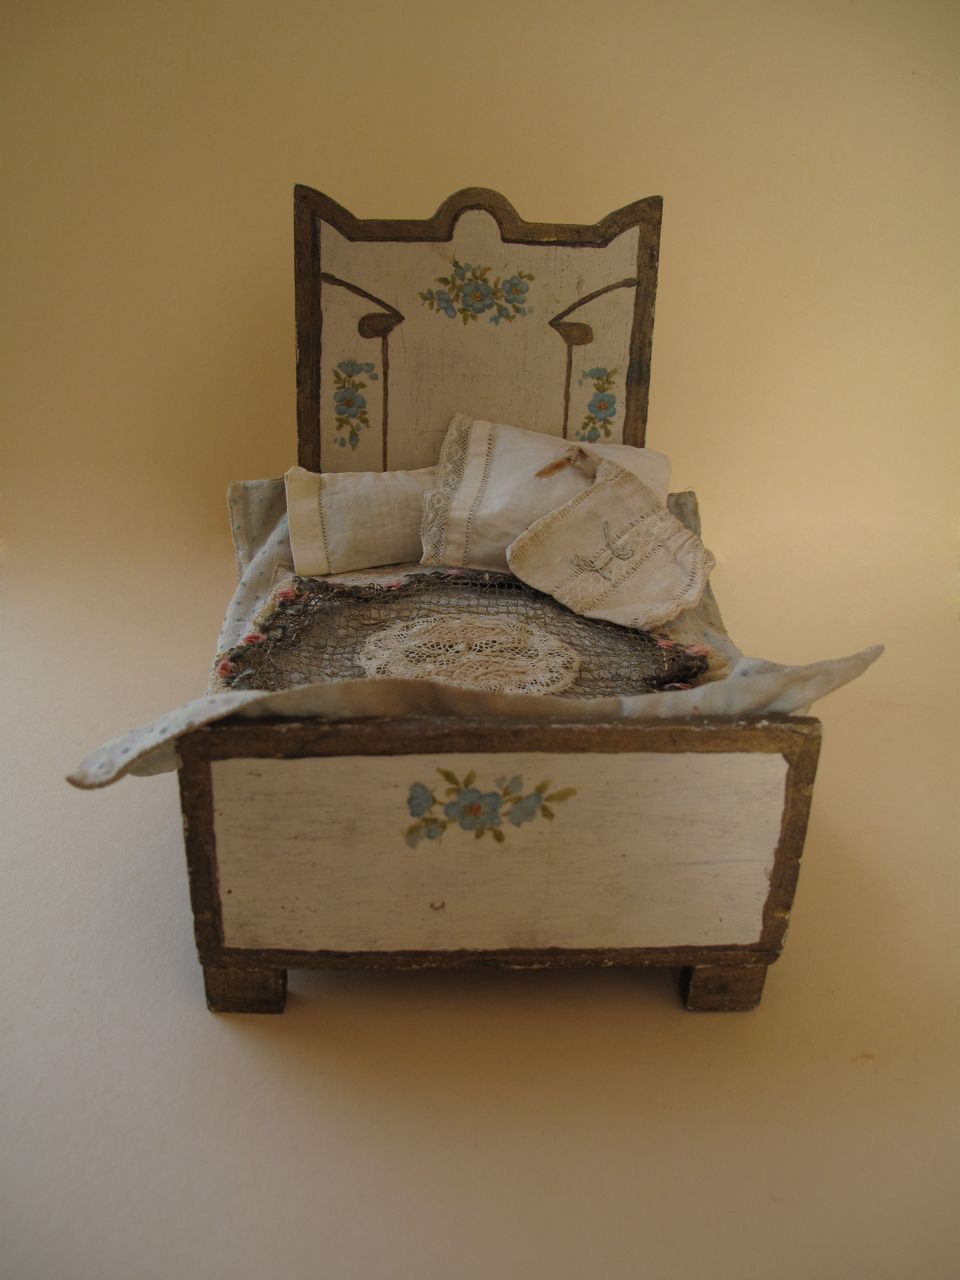 Miniature Handpainted Bed